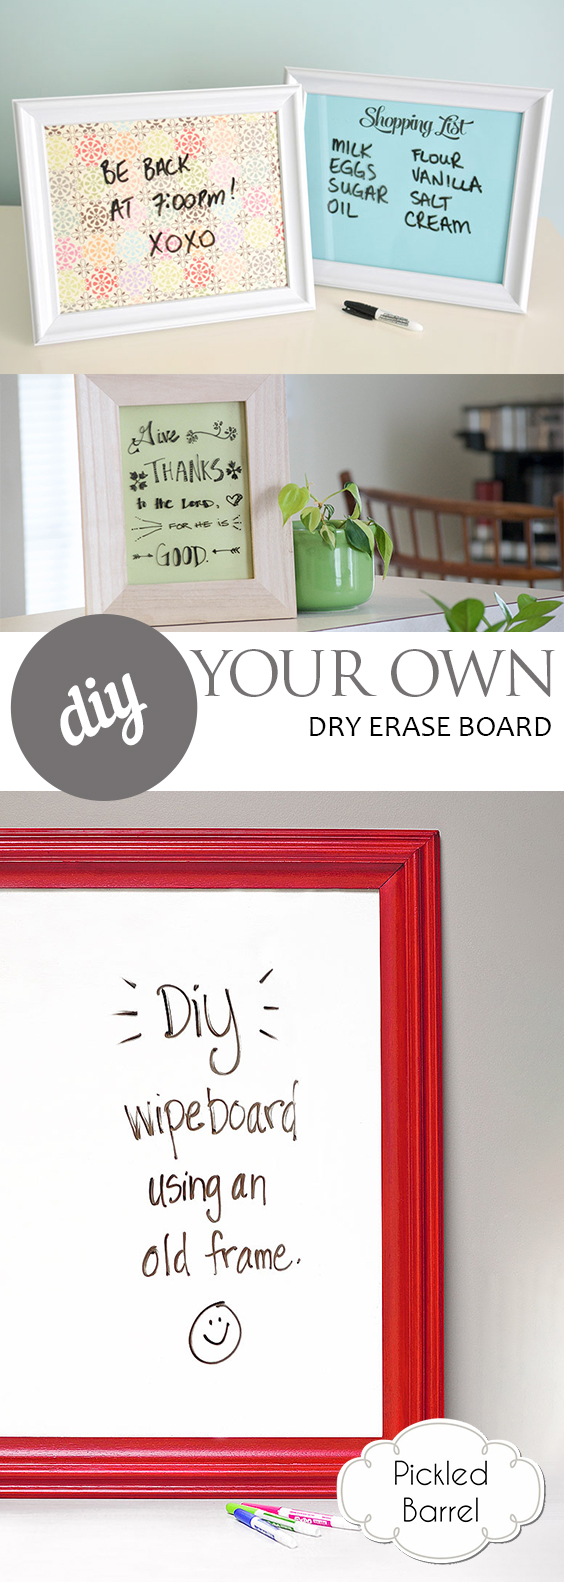 DIY Your Own Dry Erase Board| DIY, DIY Home, DIY Home Projects, Dry Erase Board, DIY Dry Erase Board, DIY Tutorials, Easy DIY Tutorials, Simple Tutorials for the Home, Popular Pin #DIYHome #DIYDryEraseBoard